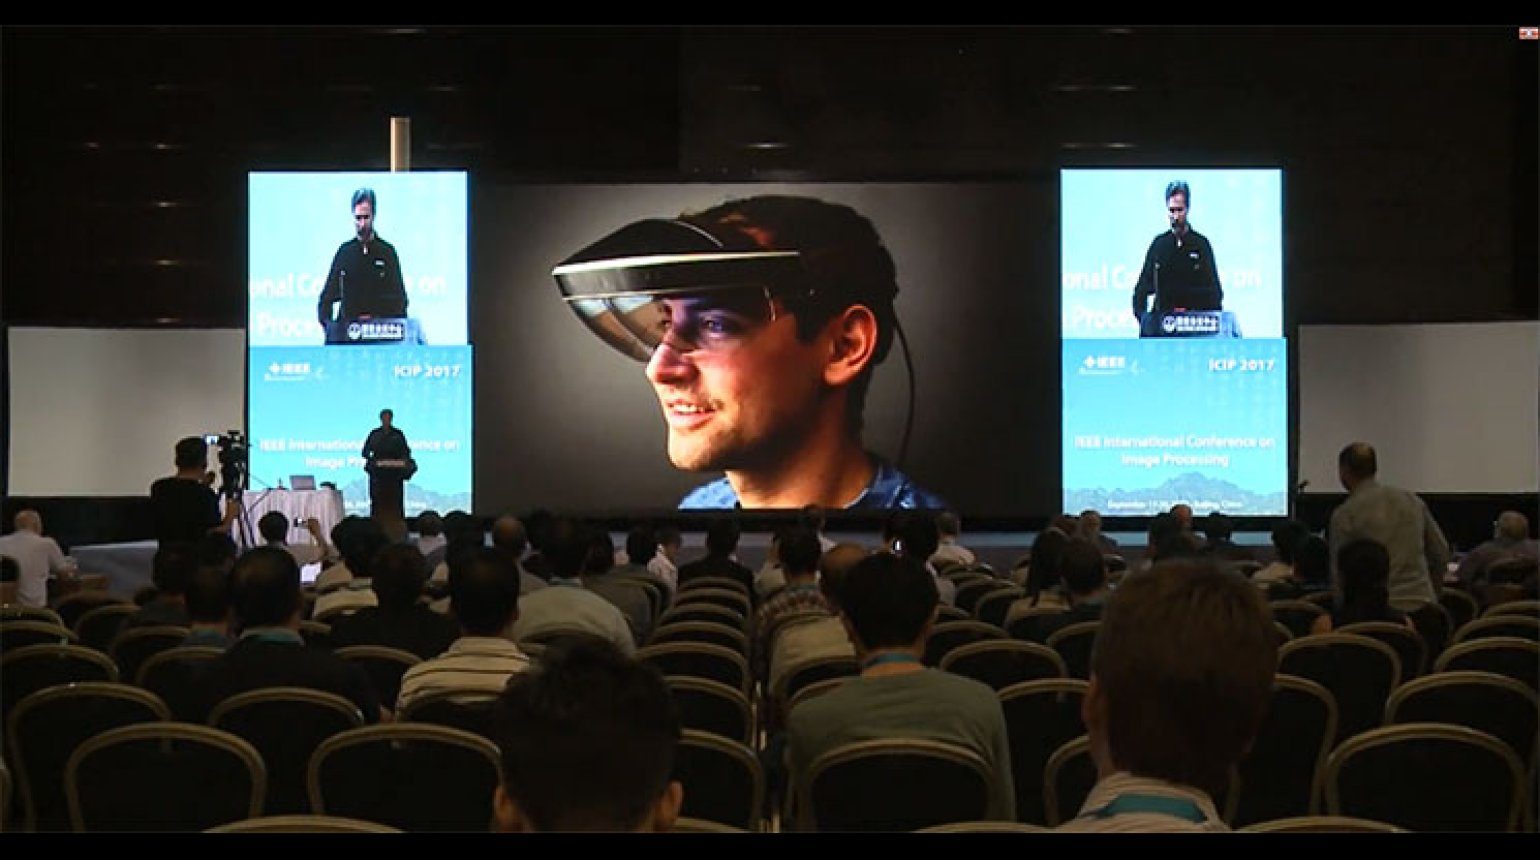 ICIP 2017 - Plenary: Immersive Optical-See-Through Augmented Reality